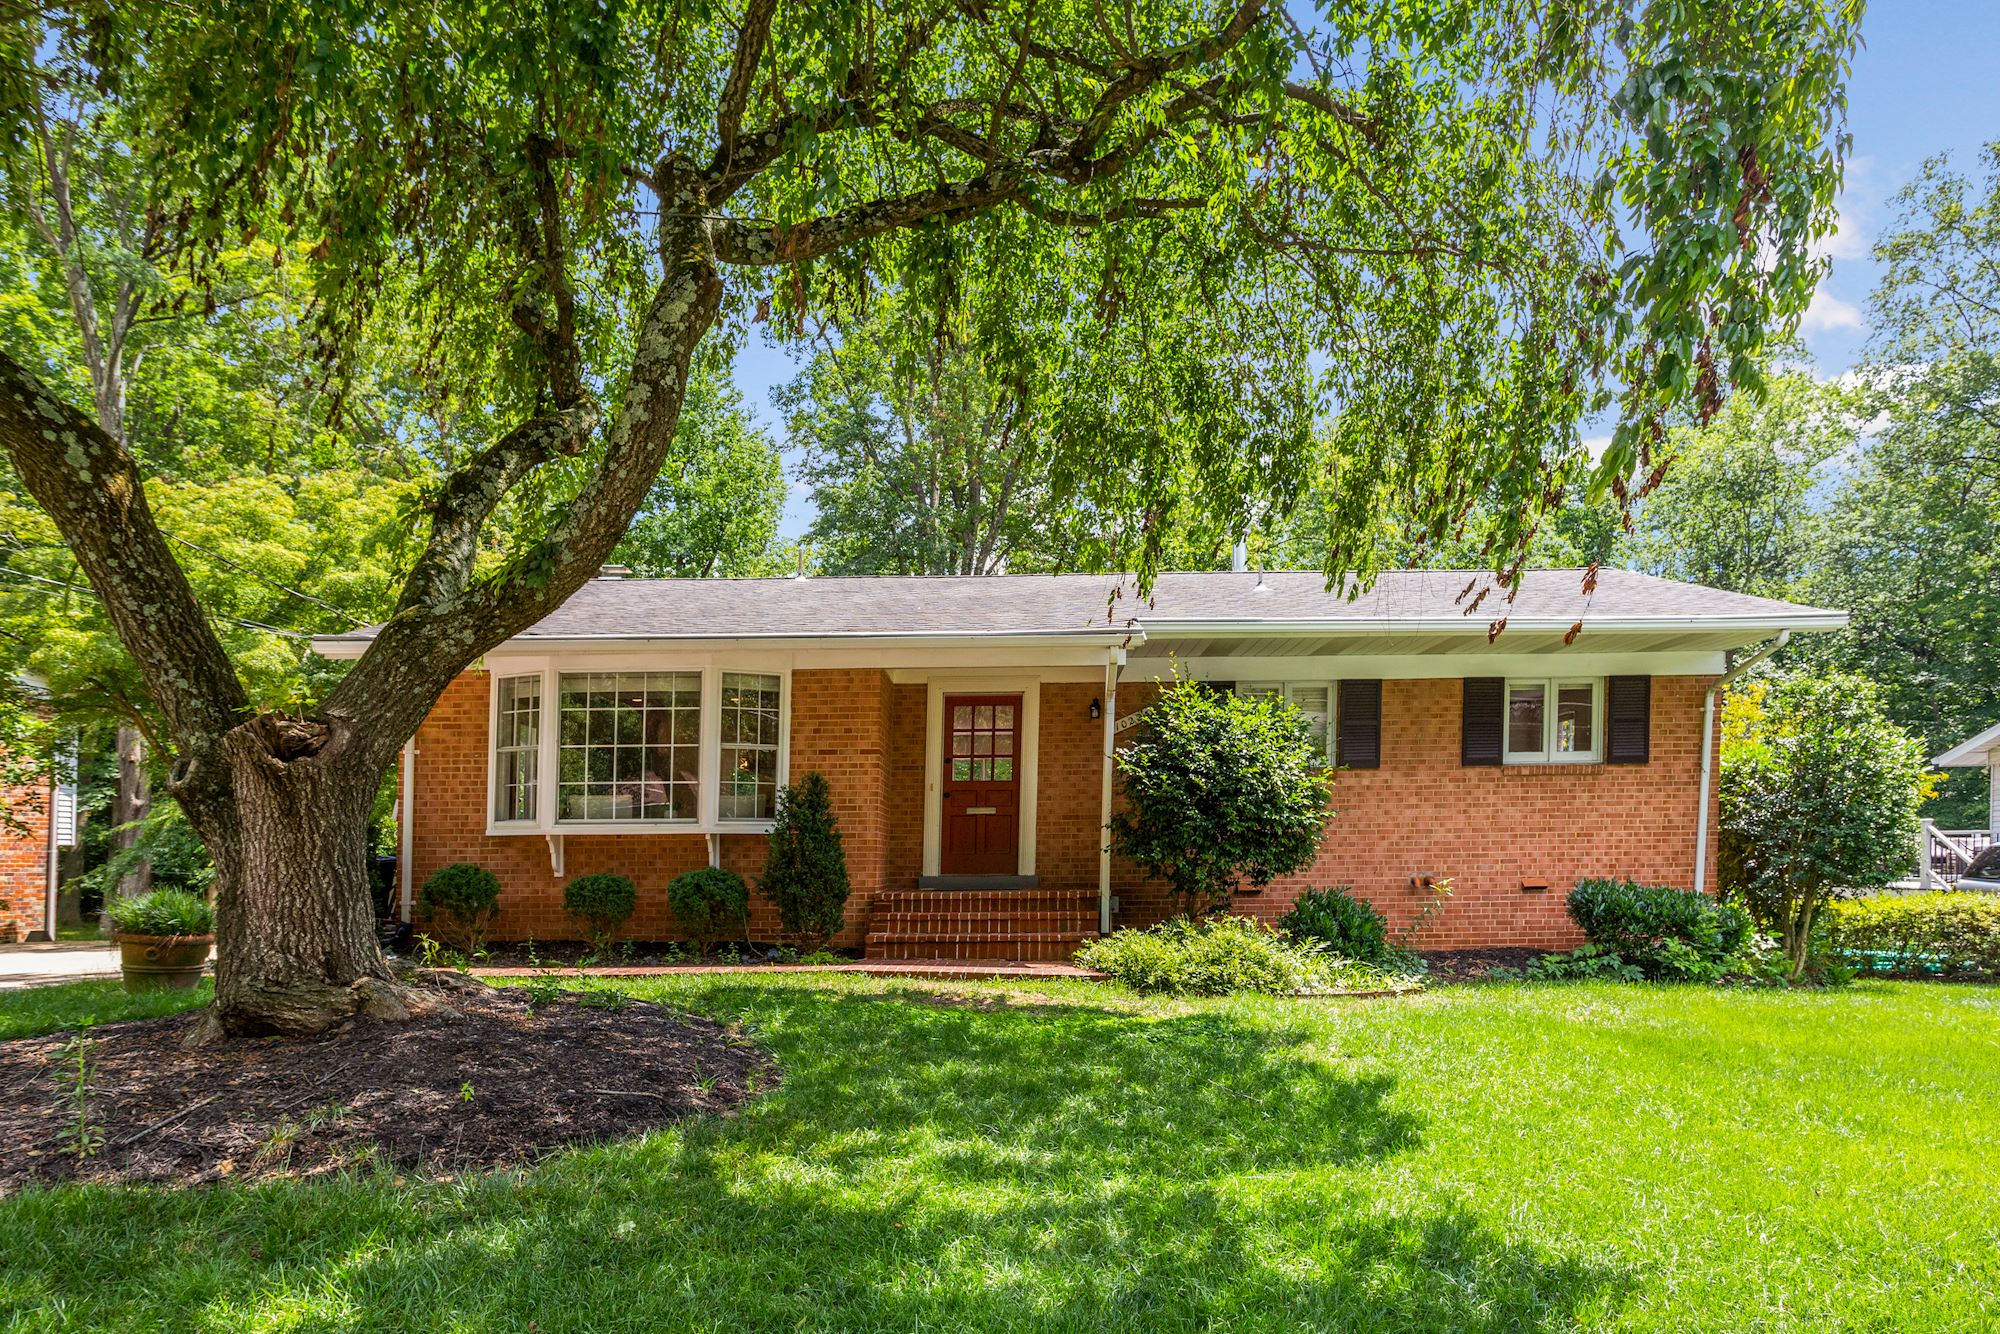 Gorgeously Updated Rambler in the Heart of Fairfax, VA